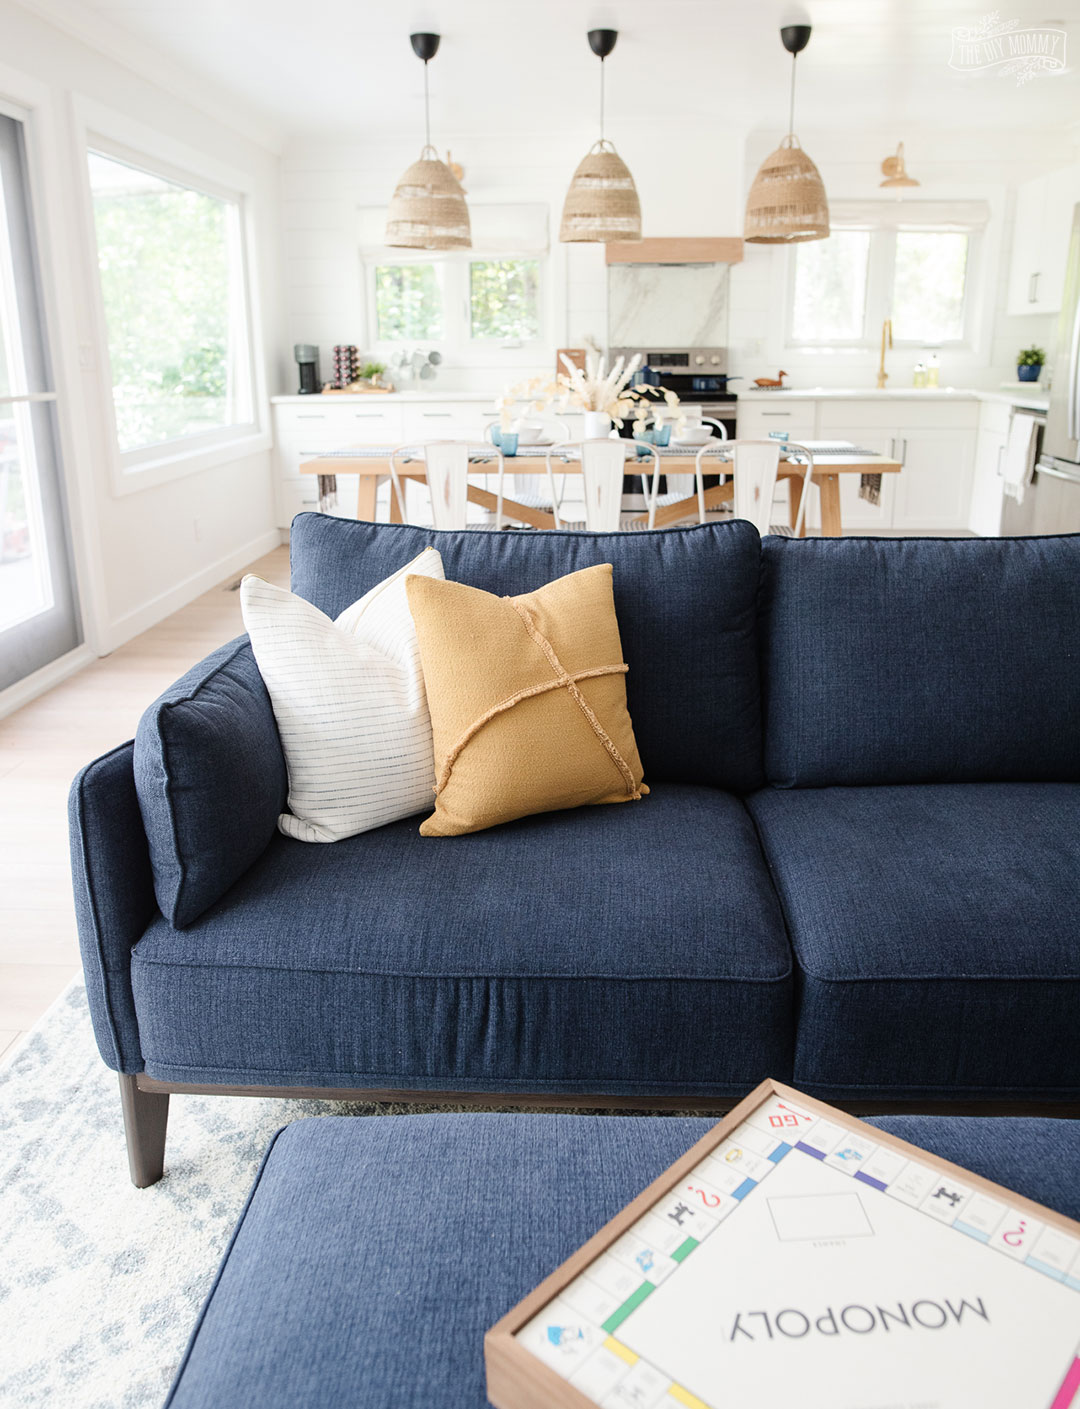 See how a boring, dated living room was transformed into a coastal modern farmhouse space with a DIY shiplap fireplace and adorable office nook with storage.